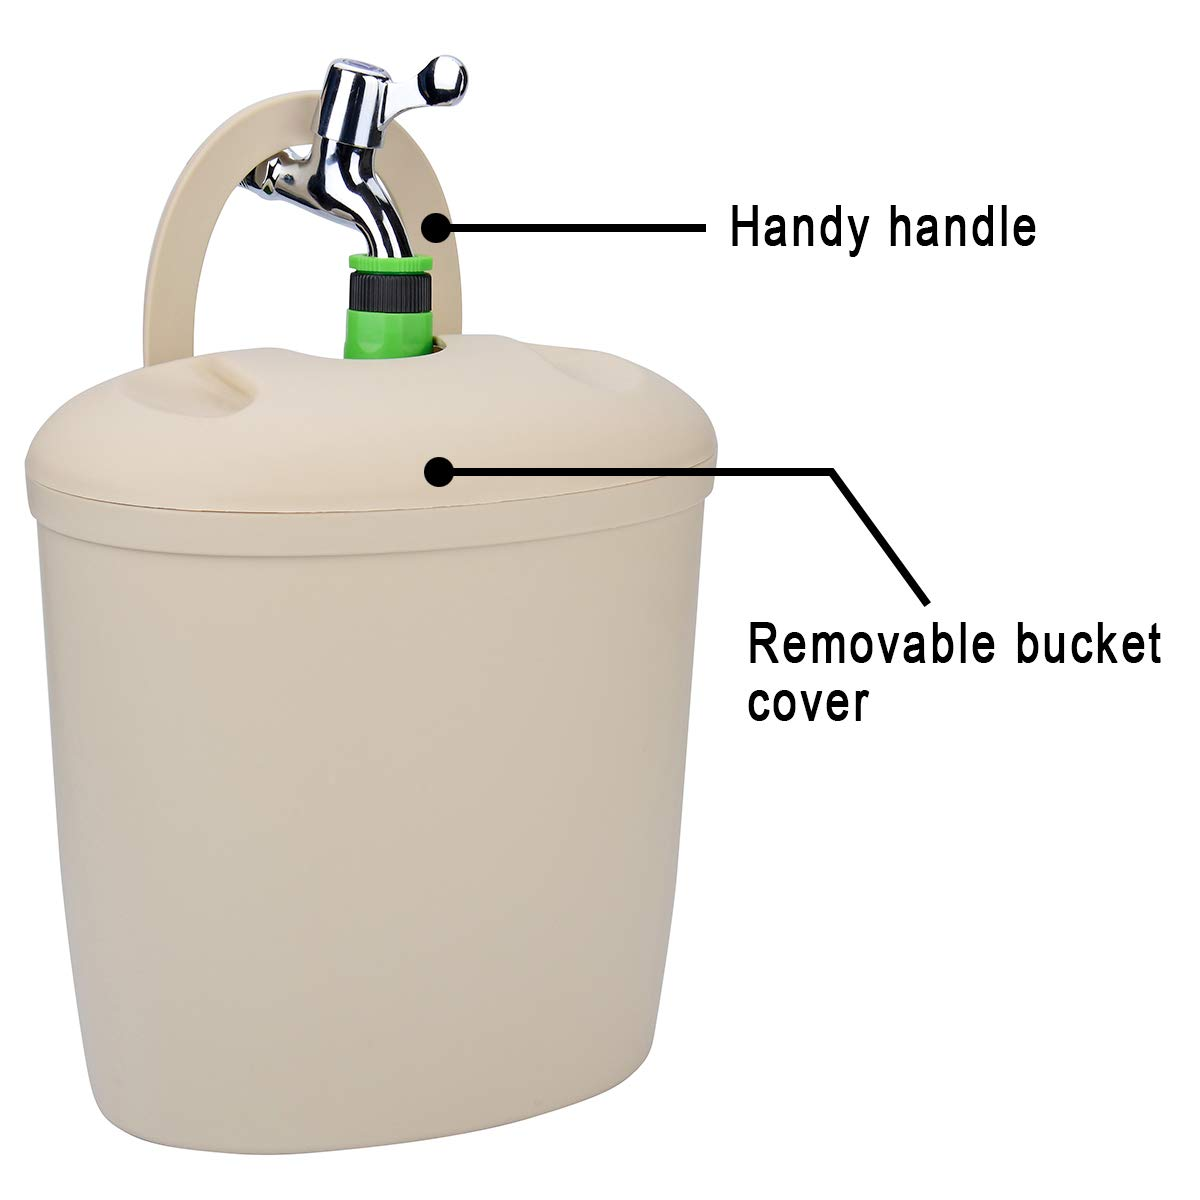 LAISHOW 1 Pack Garden Hose Bucket Holder with Self Draining Feature for Storing Expandable Garden Hoses